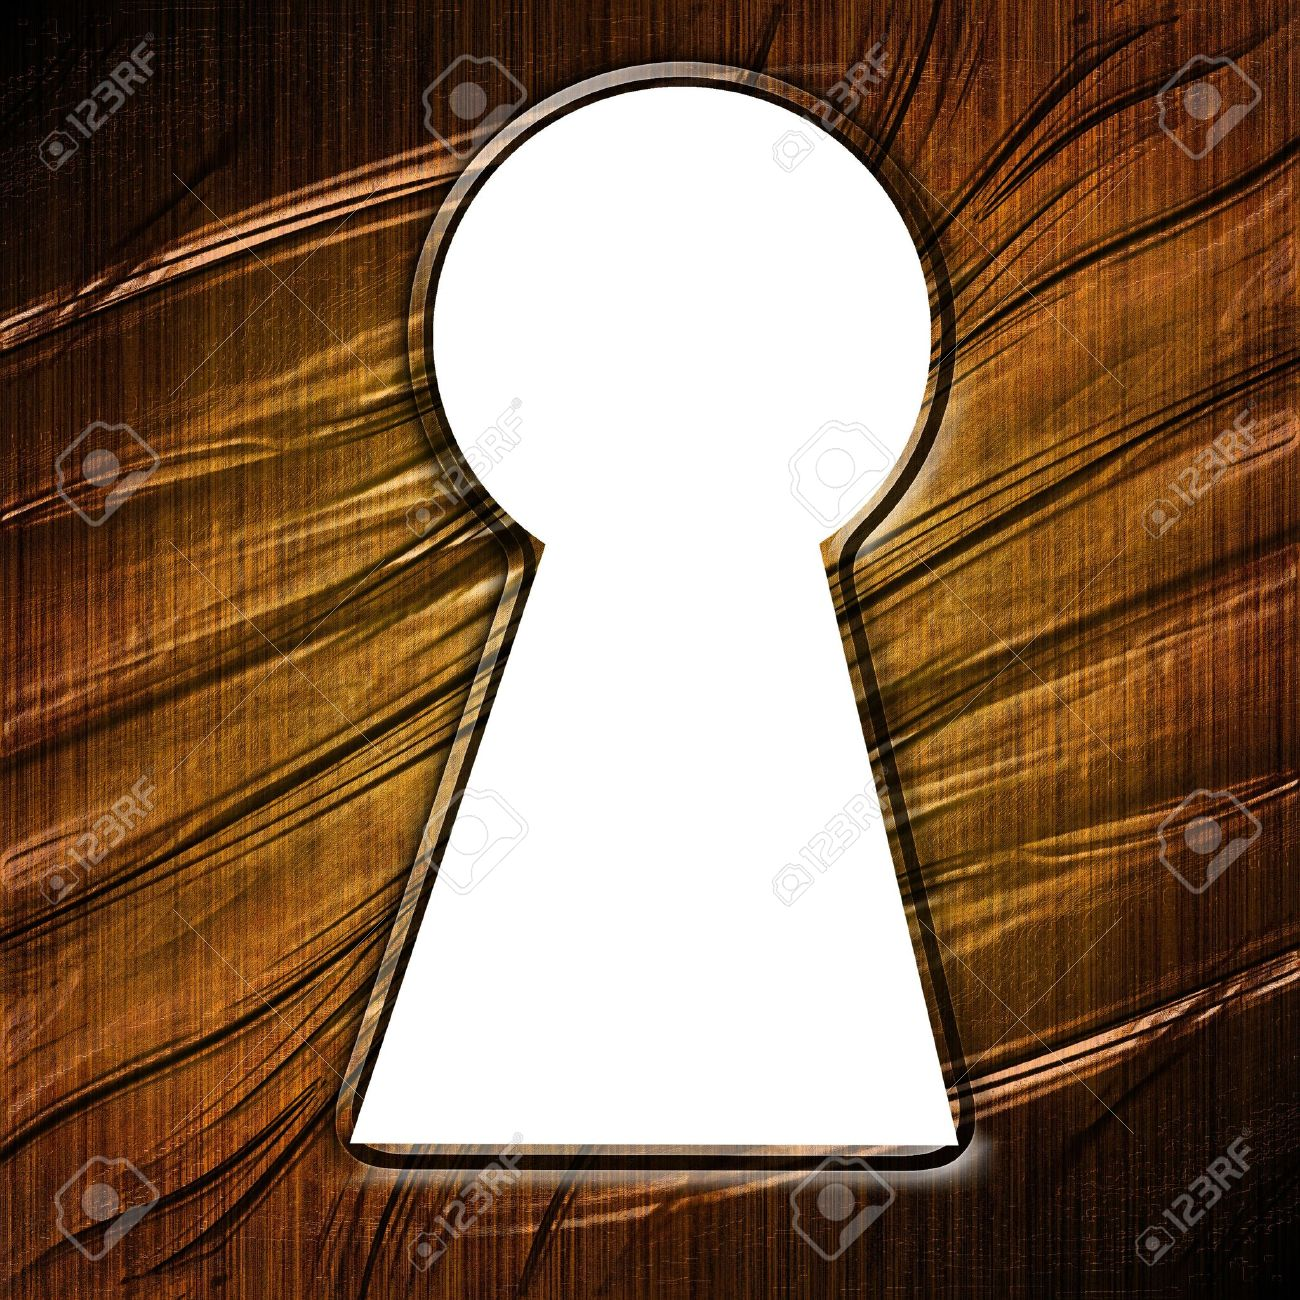 key hole in a wooden door with some damage Stock Photo - 3782675 & Key Hole In A Wooden Door With Some Damage Stock Photo Picture And ...